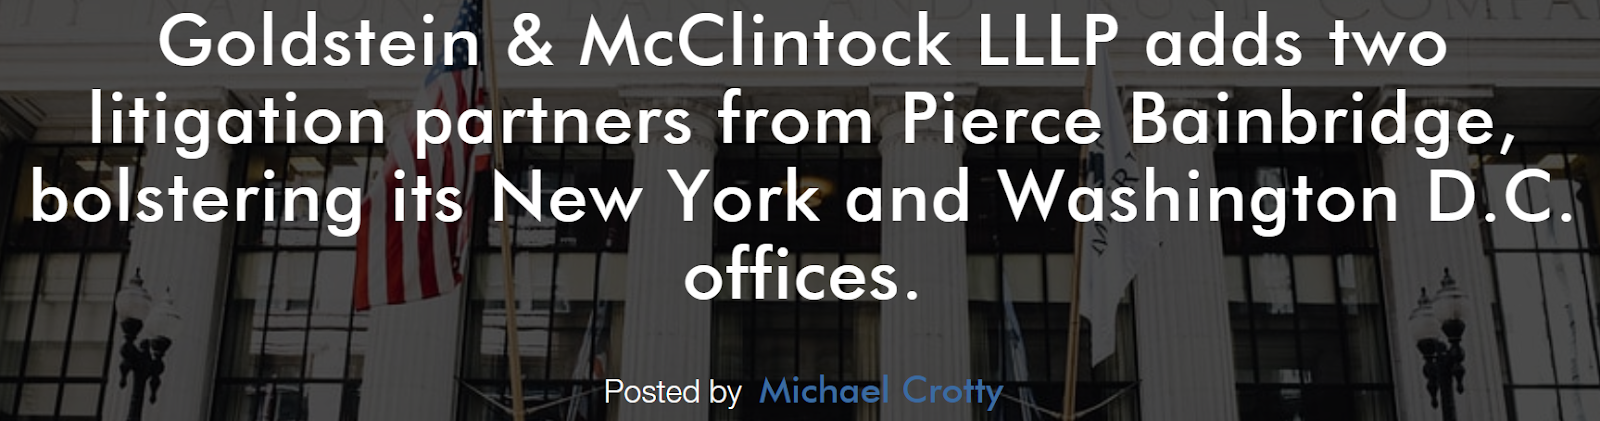 Breaking News:  Ex-Pierce Bainbridge General Counsel is Now at Goldstein & McClintock 5